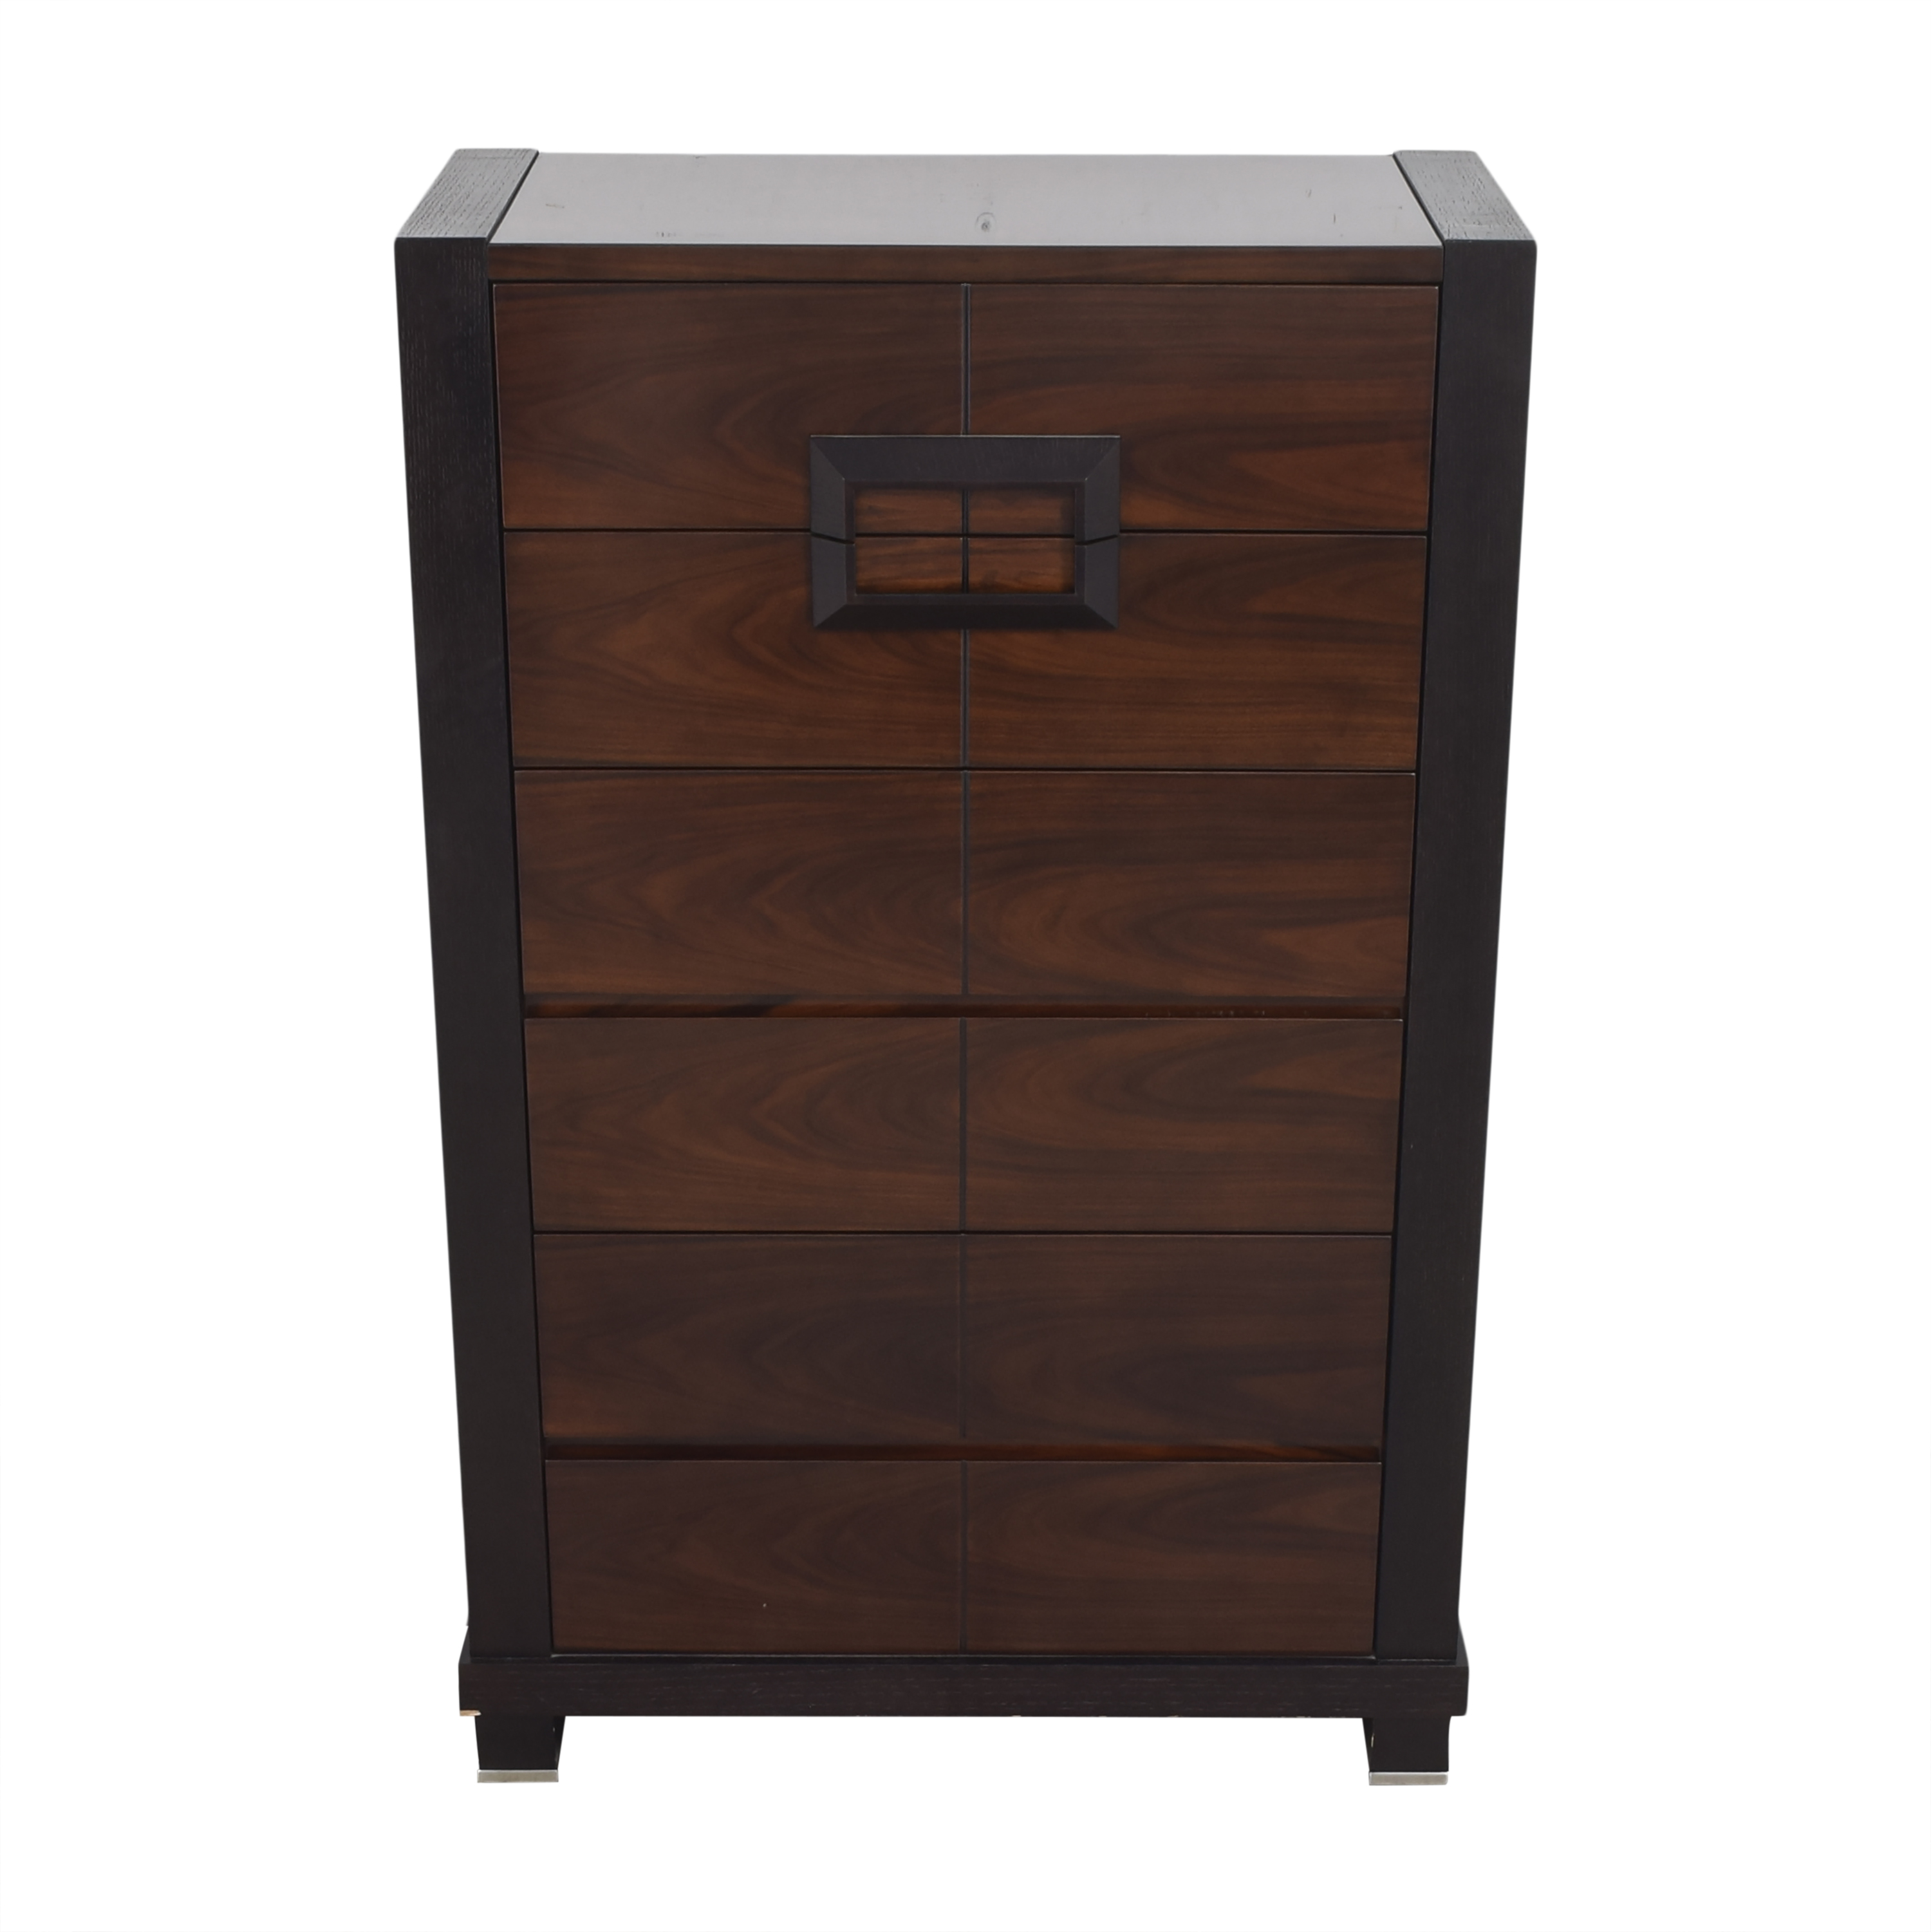 Giorgio Collection Paradiso Collection Chest / Dressers